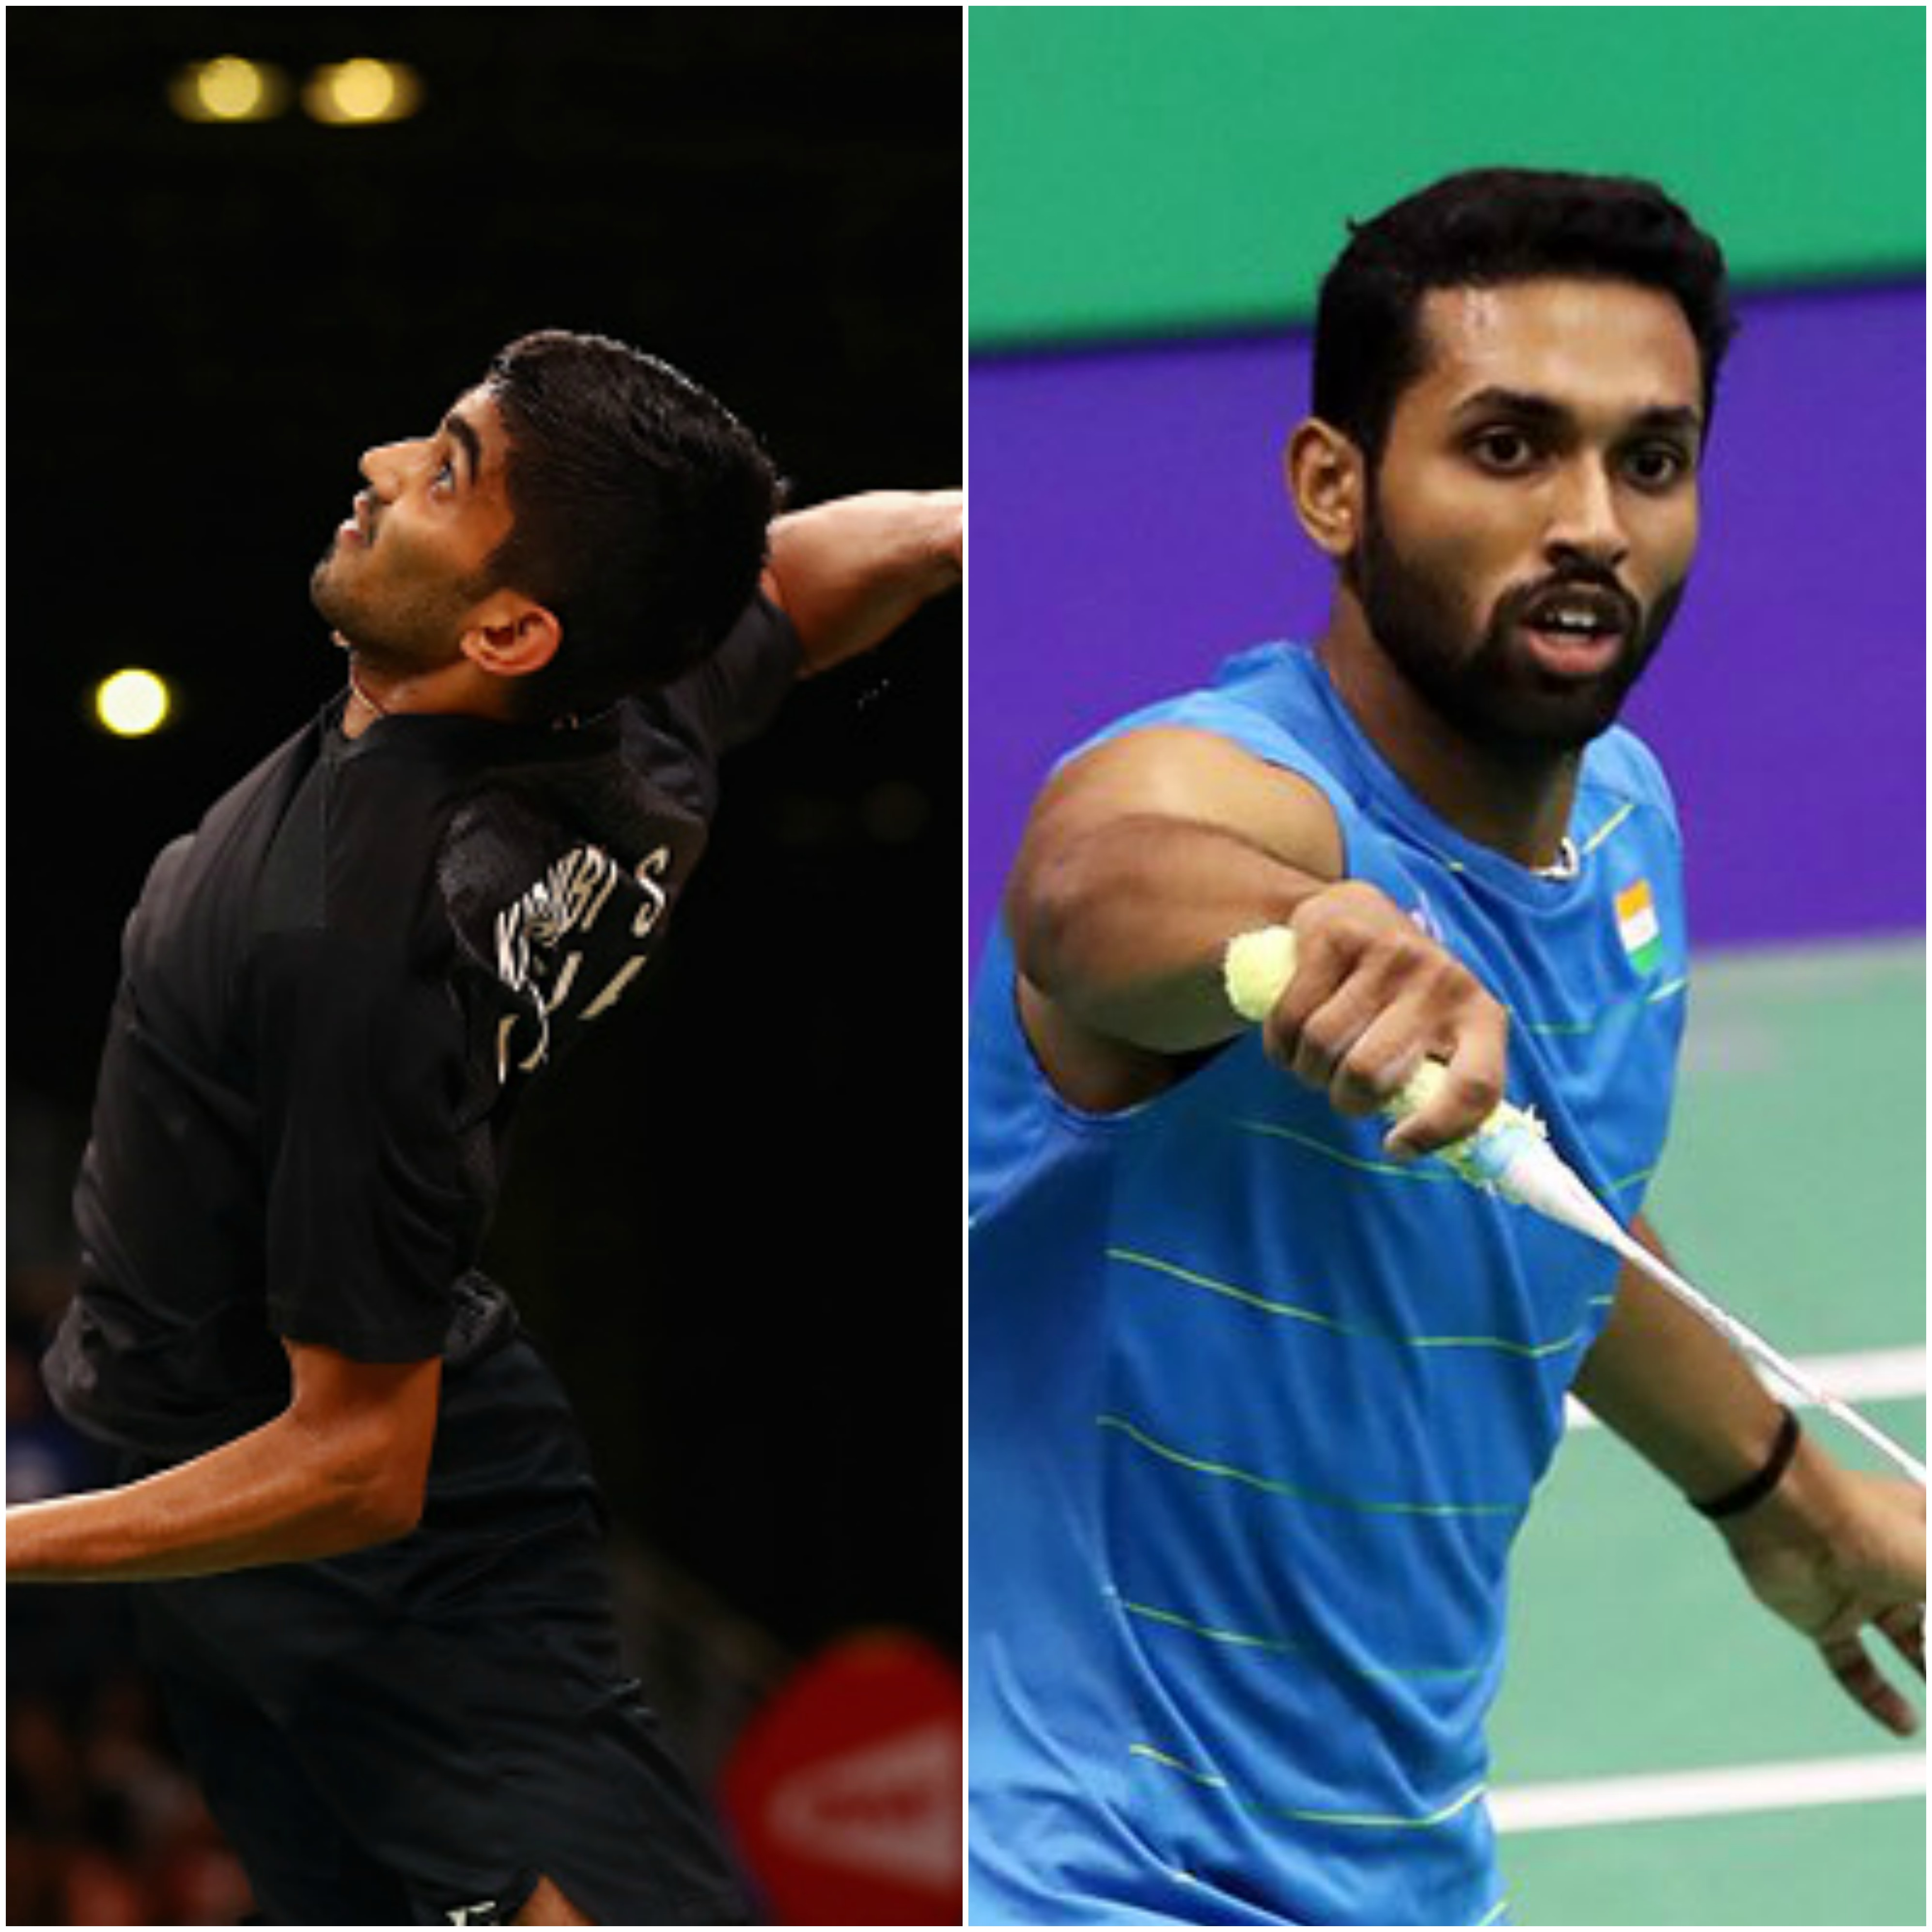 Highlights Indonesia SSP badminton scores and results HS Prannoy